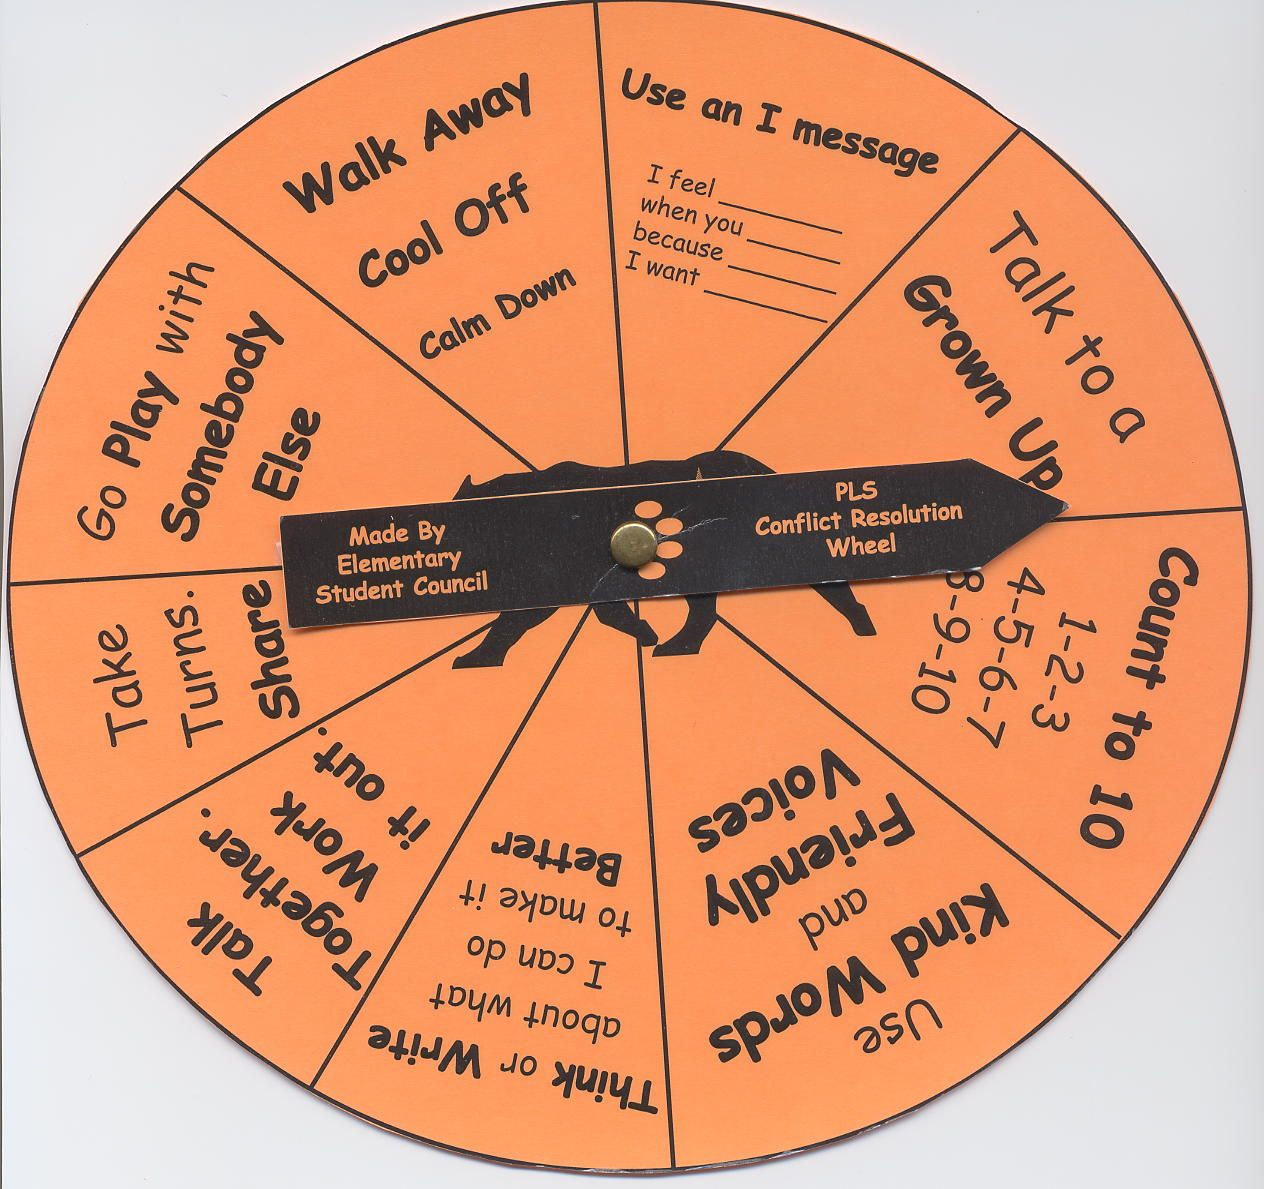 Conflict Resolution Wheel